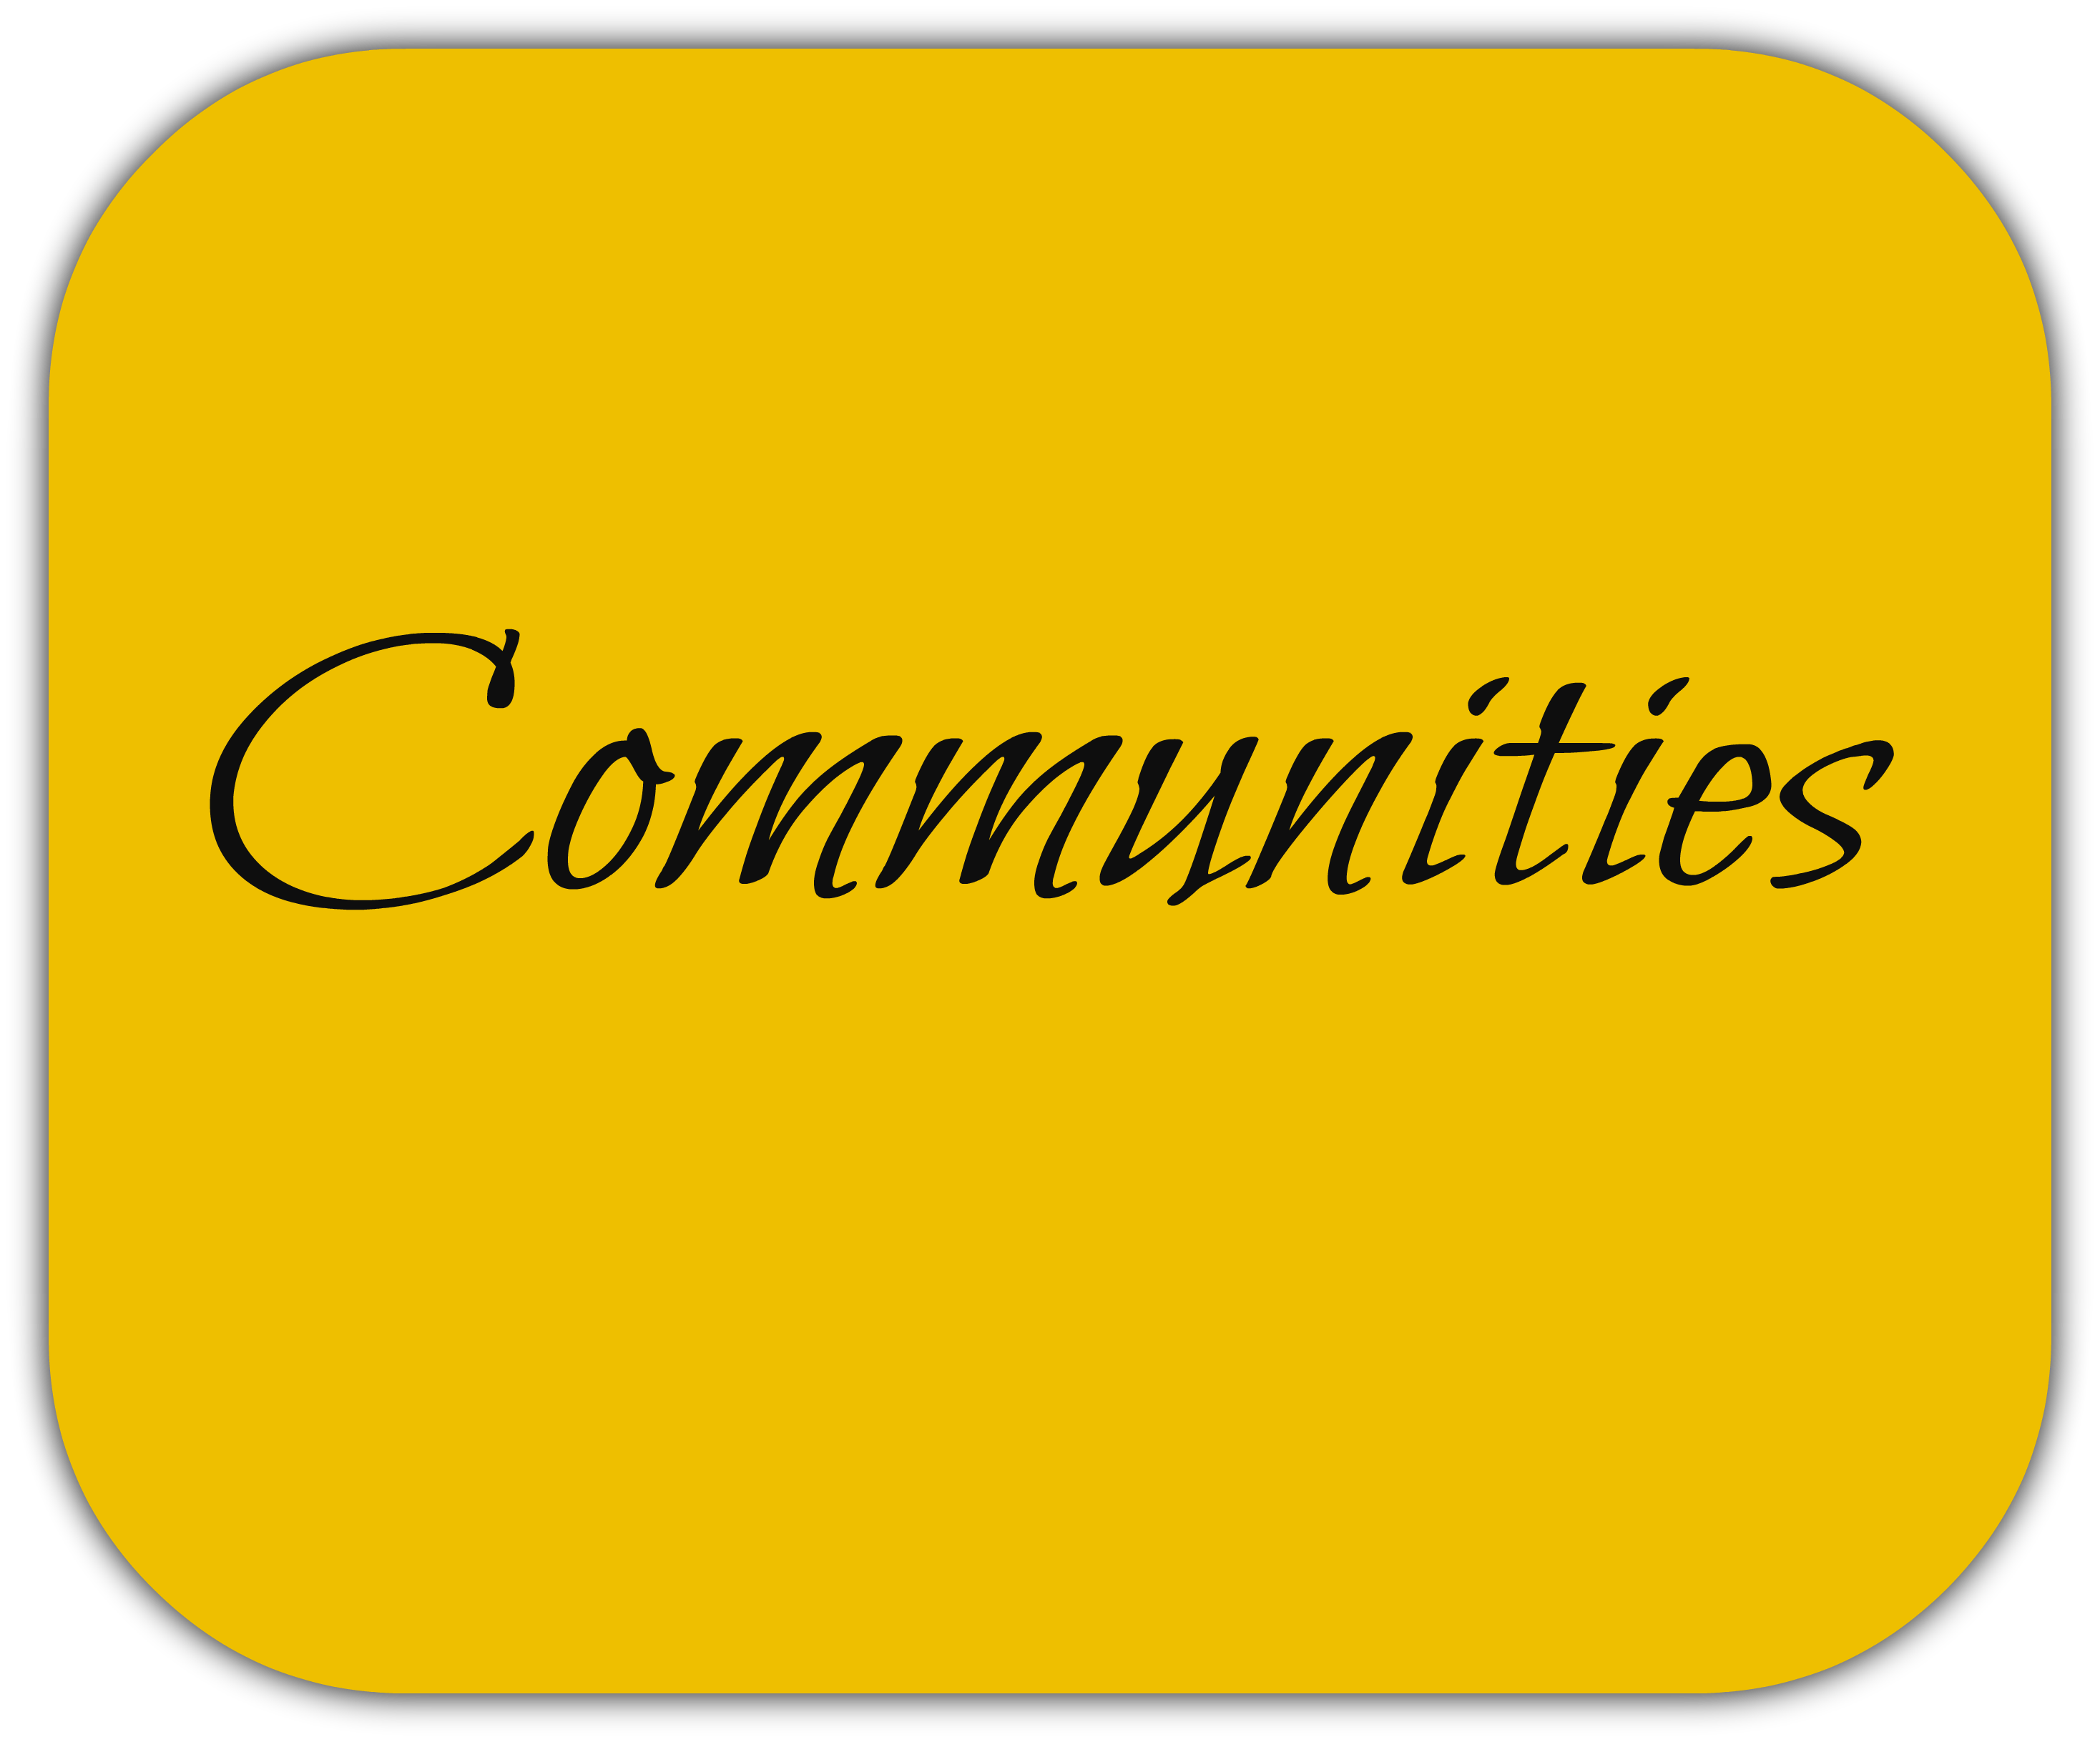 Pocono Communities